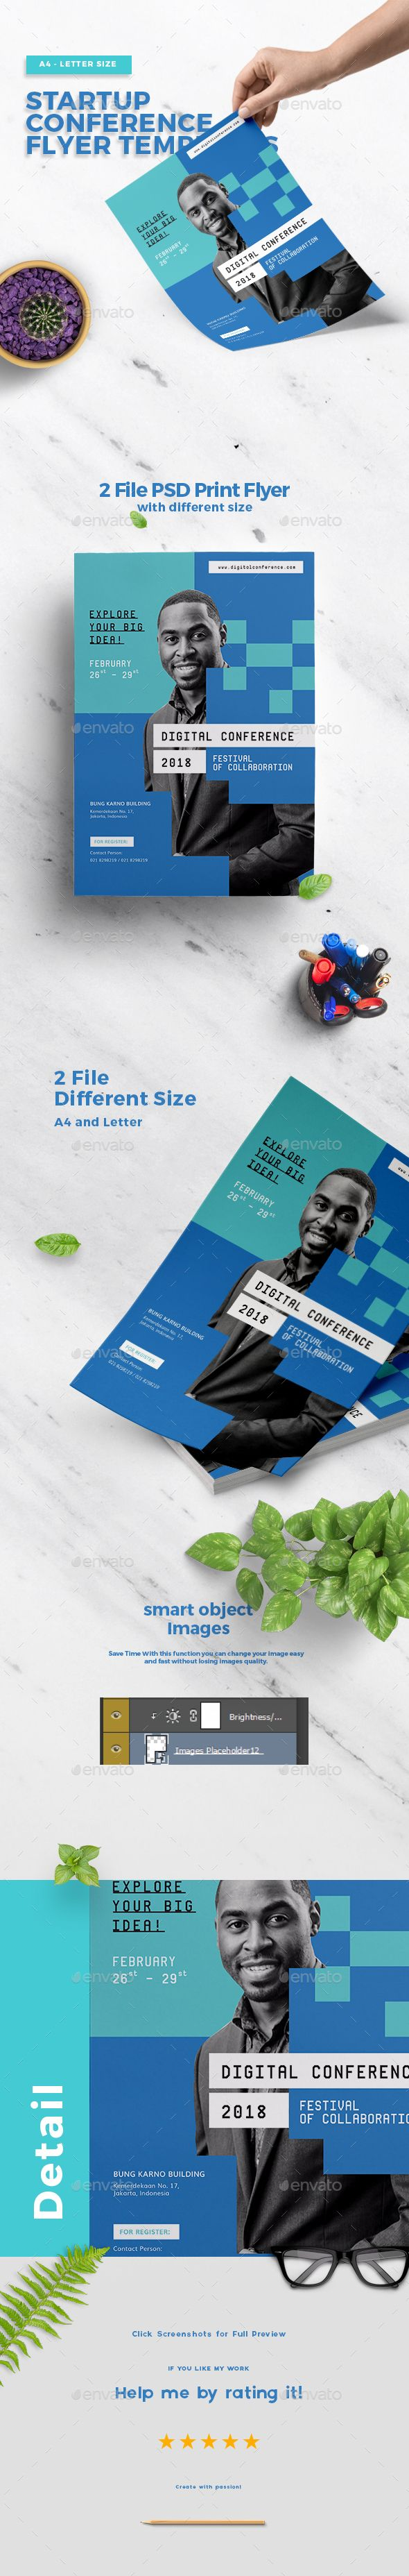 Startup Conference Multipurpose Brand (Print and Social Media) Template PSD